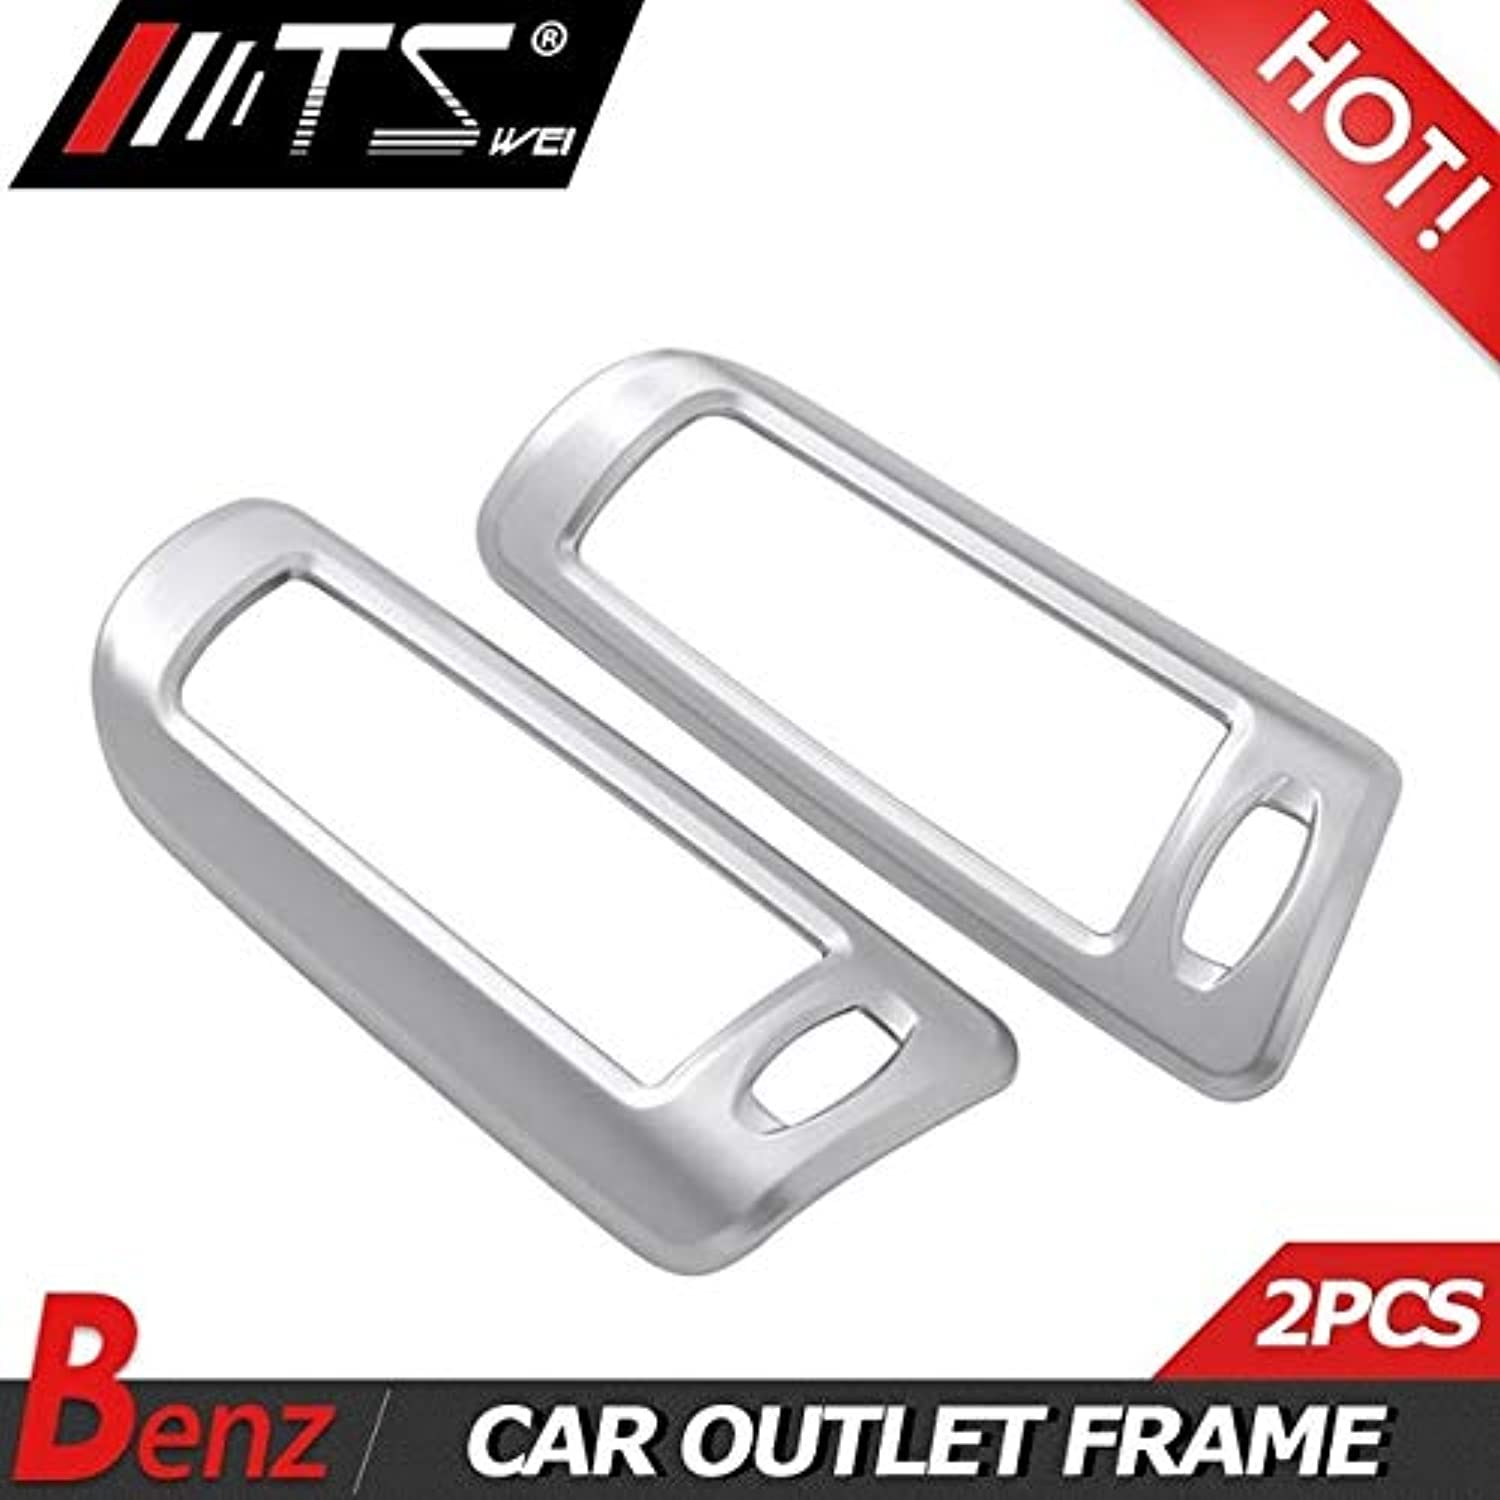 Car Accessories for Mercedes Benz S Class W222 S300 S320 S350 S400 ABS Chrome B Pillar Air Conditining Outlet Frame Trim  (color Name  Black)